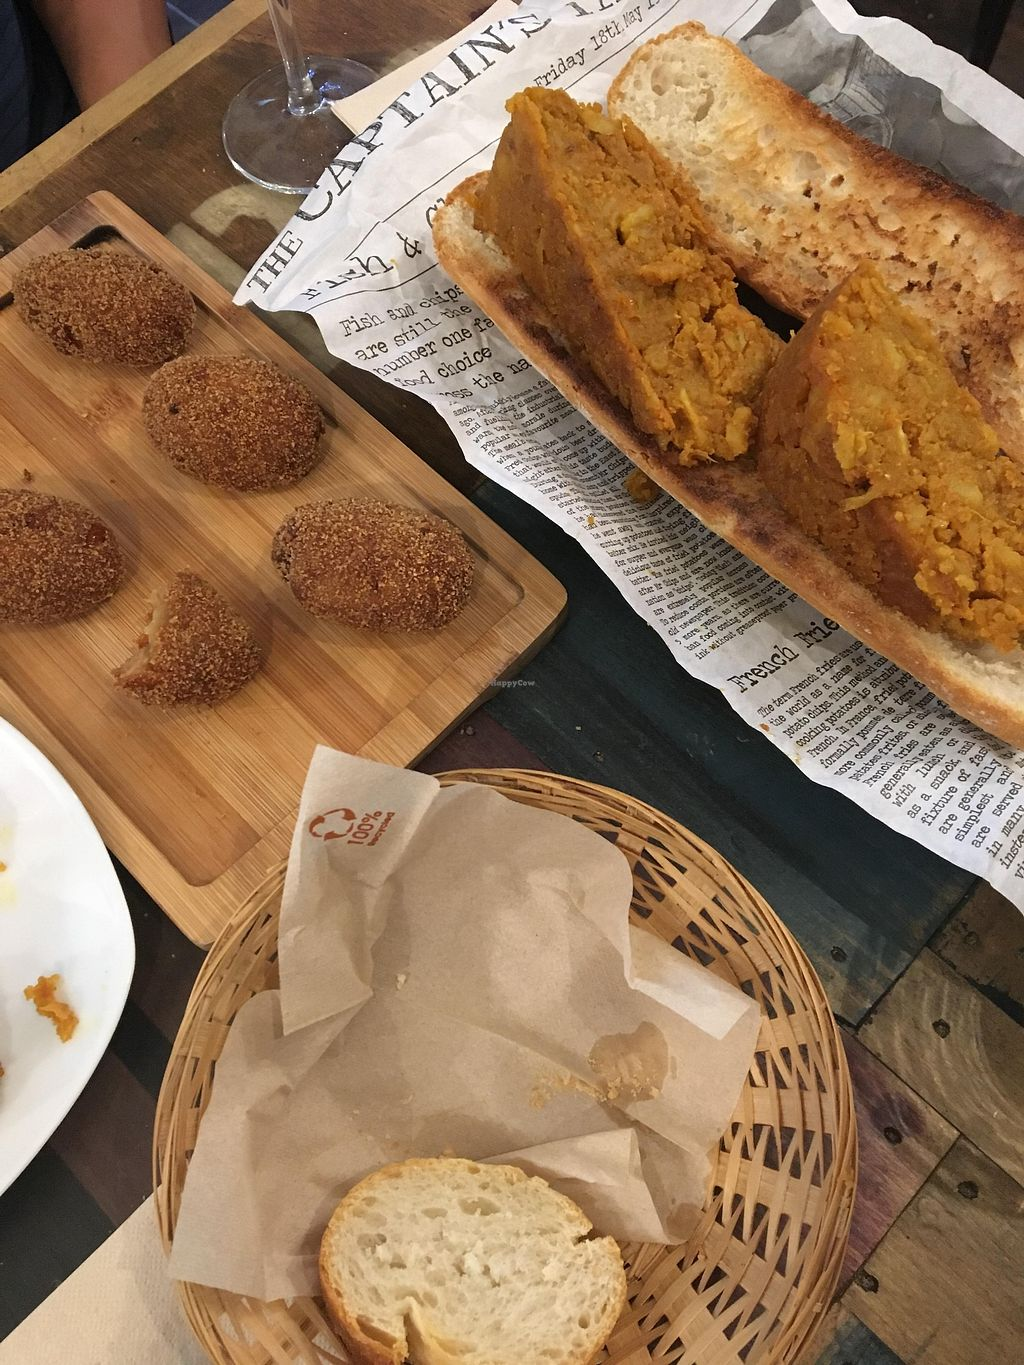 "Photo of El Perro Gamberro  by <a href=""/members/profile/sian_ractliffe"">sian_ractliffe</a> <br/>croquetas/croquettes (6 units for 8 euros), MASSIVE bocadillo del tortilla/tortilla sandwich (6 euros) <br/> March 17, 2018  - <a href='/contact/abuse/image/80267/372055'>Report</a>"